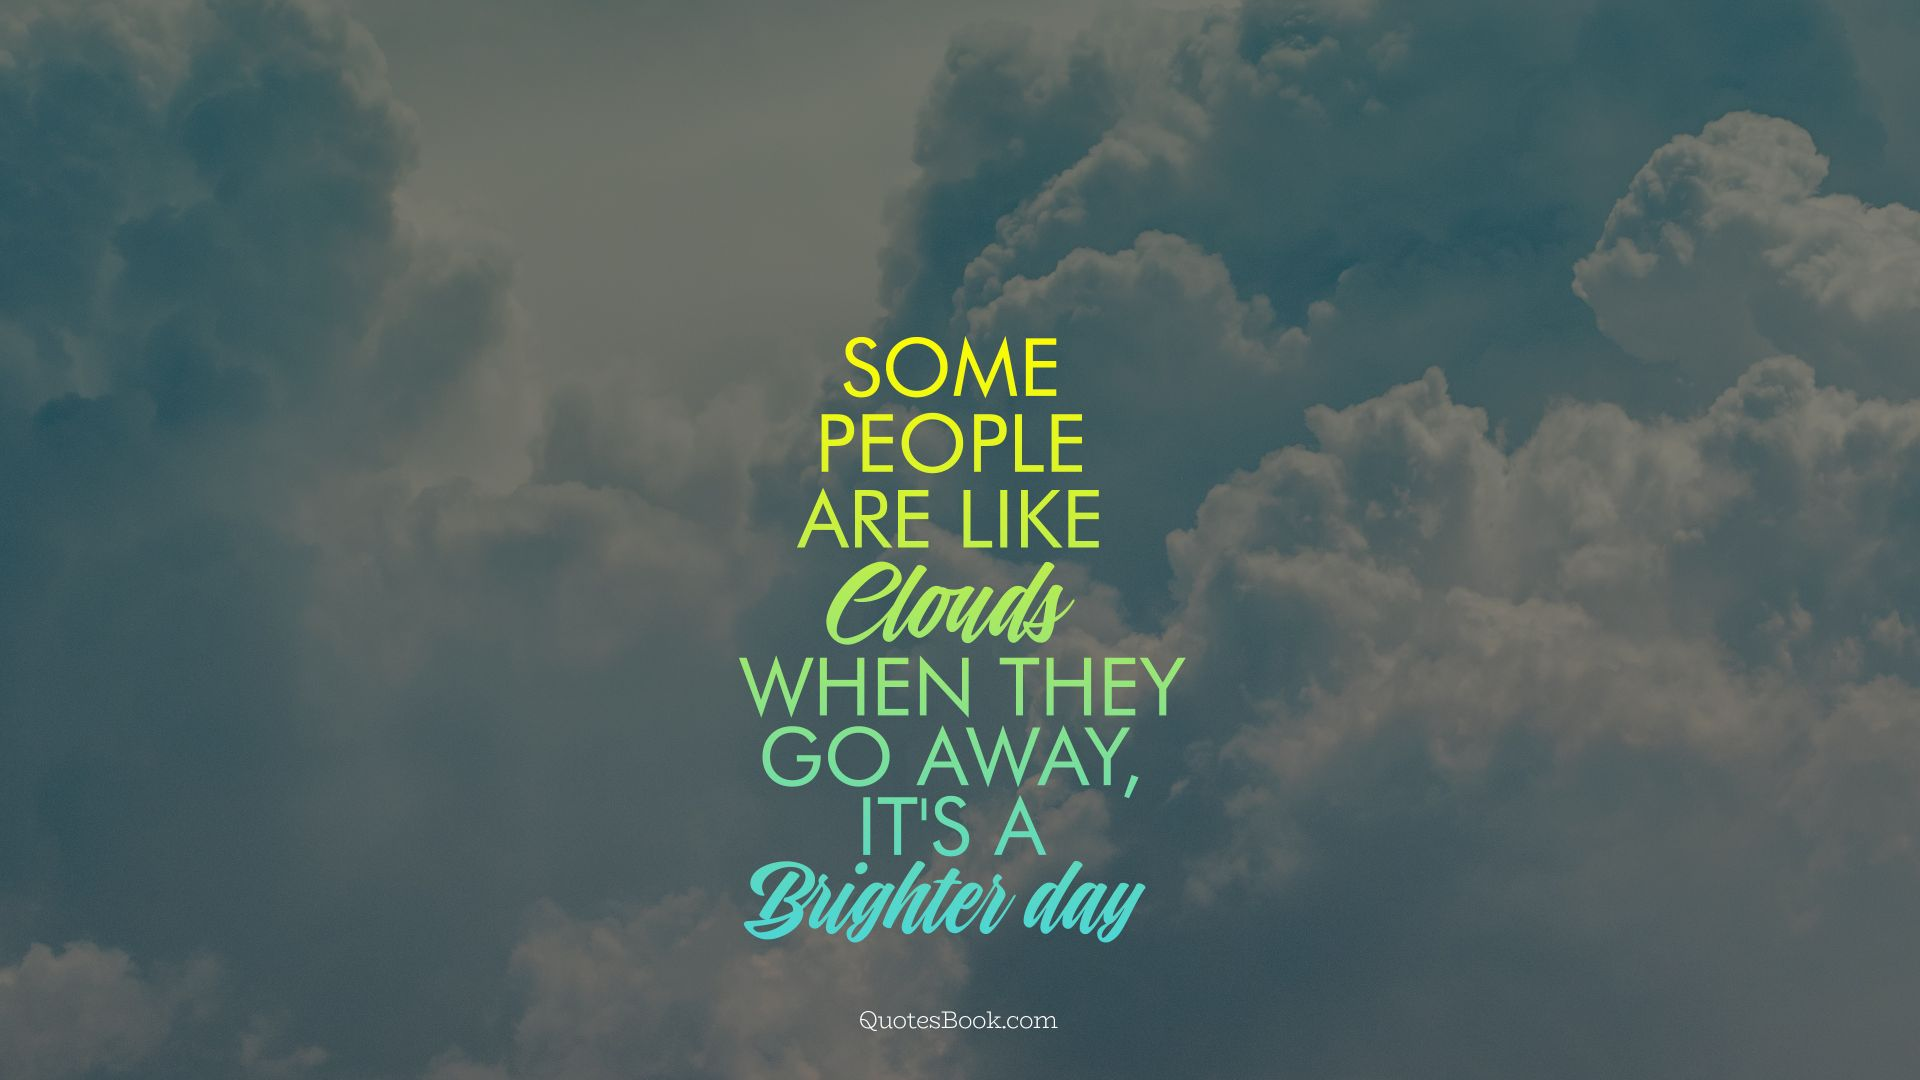 Some people are like clouds. When they go away, it's a brighter day